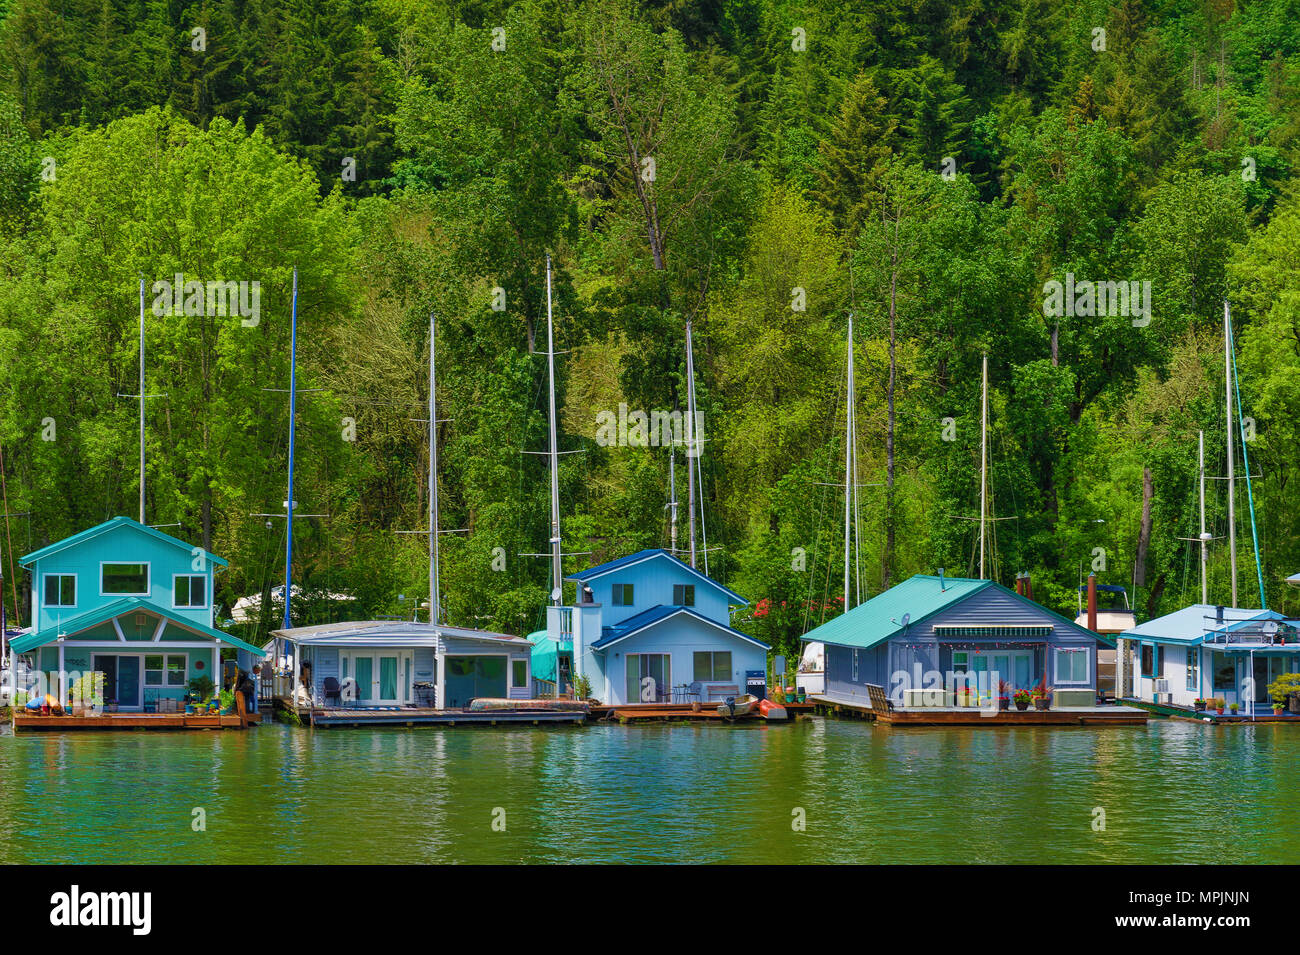 Sauvie Island, Oregon,USA - May 10, 2018:  Floating homes on the Multnomah Channel of the Willamette River near Portland, Oregon - Stock Image